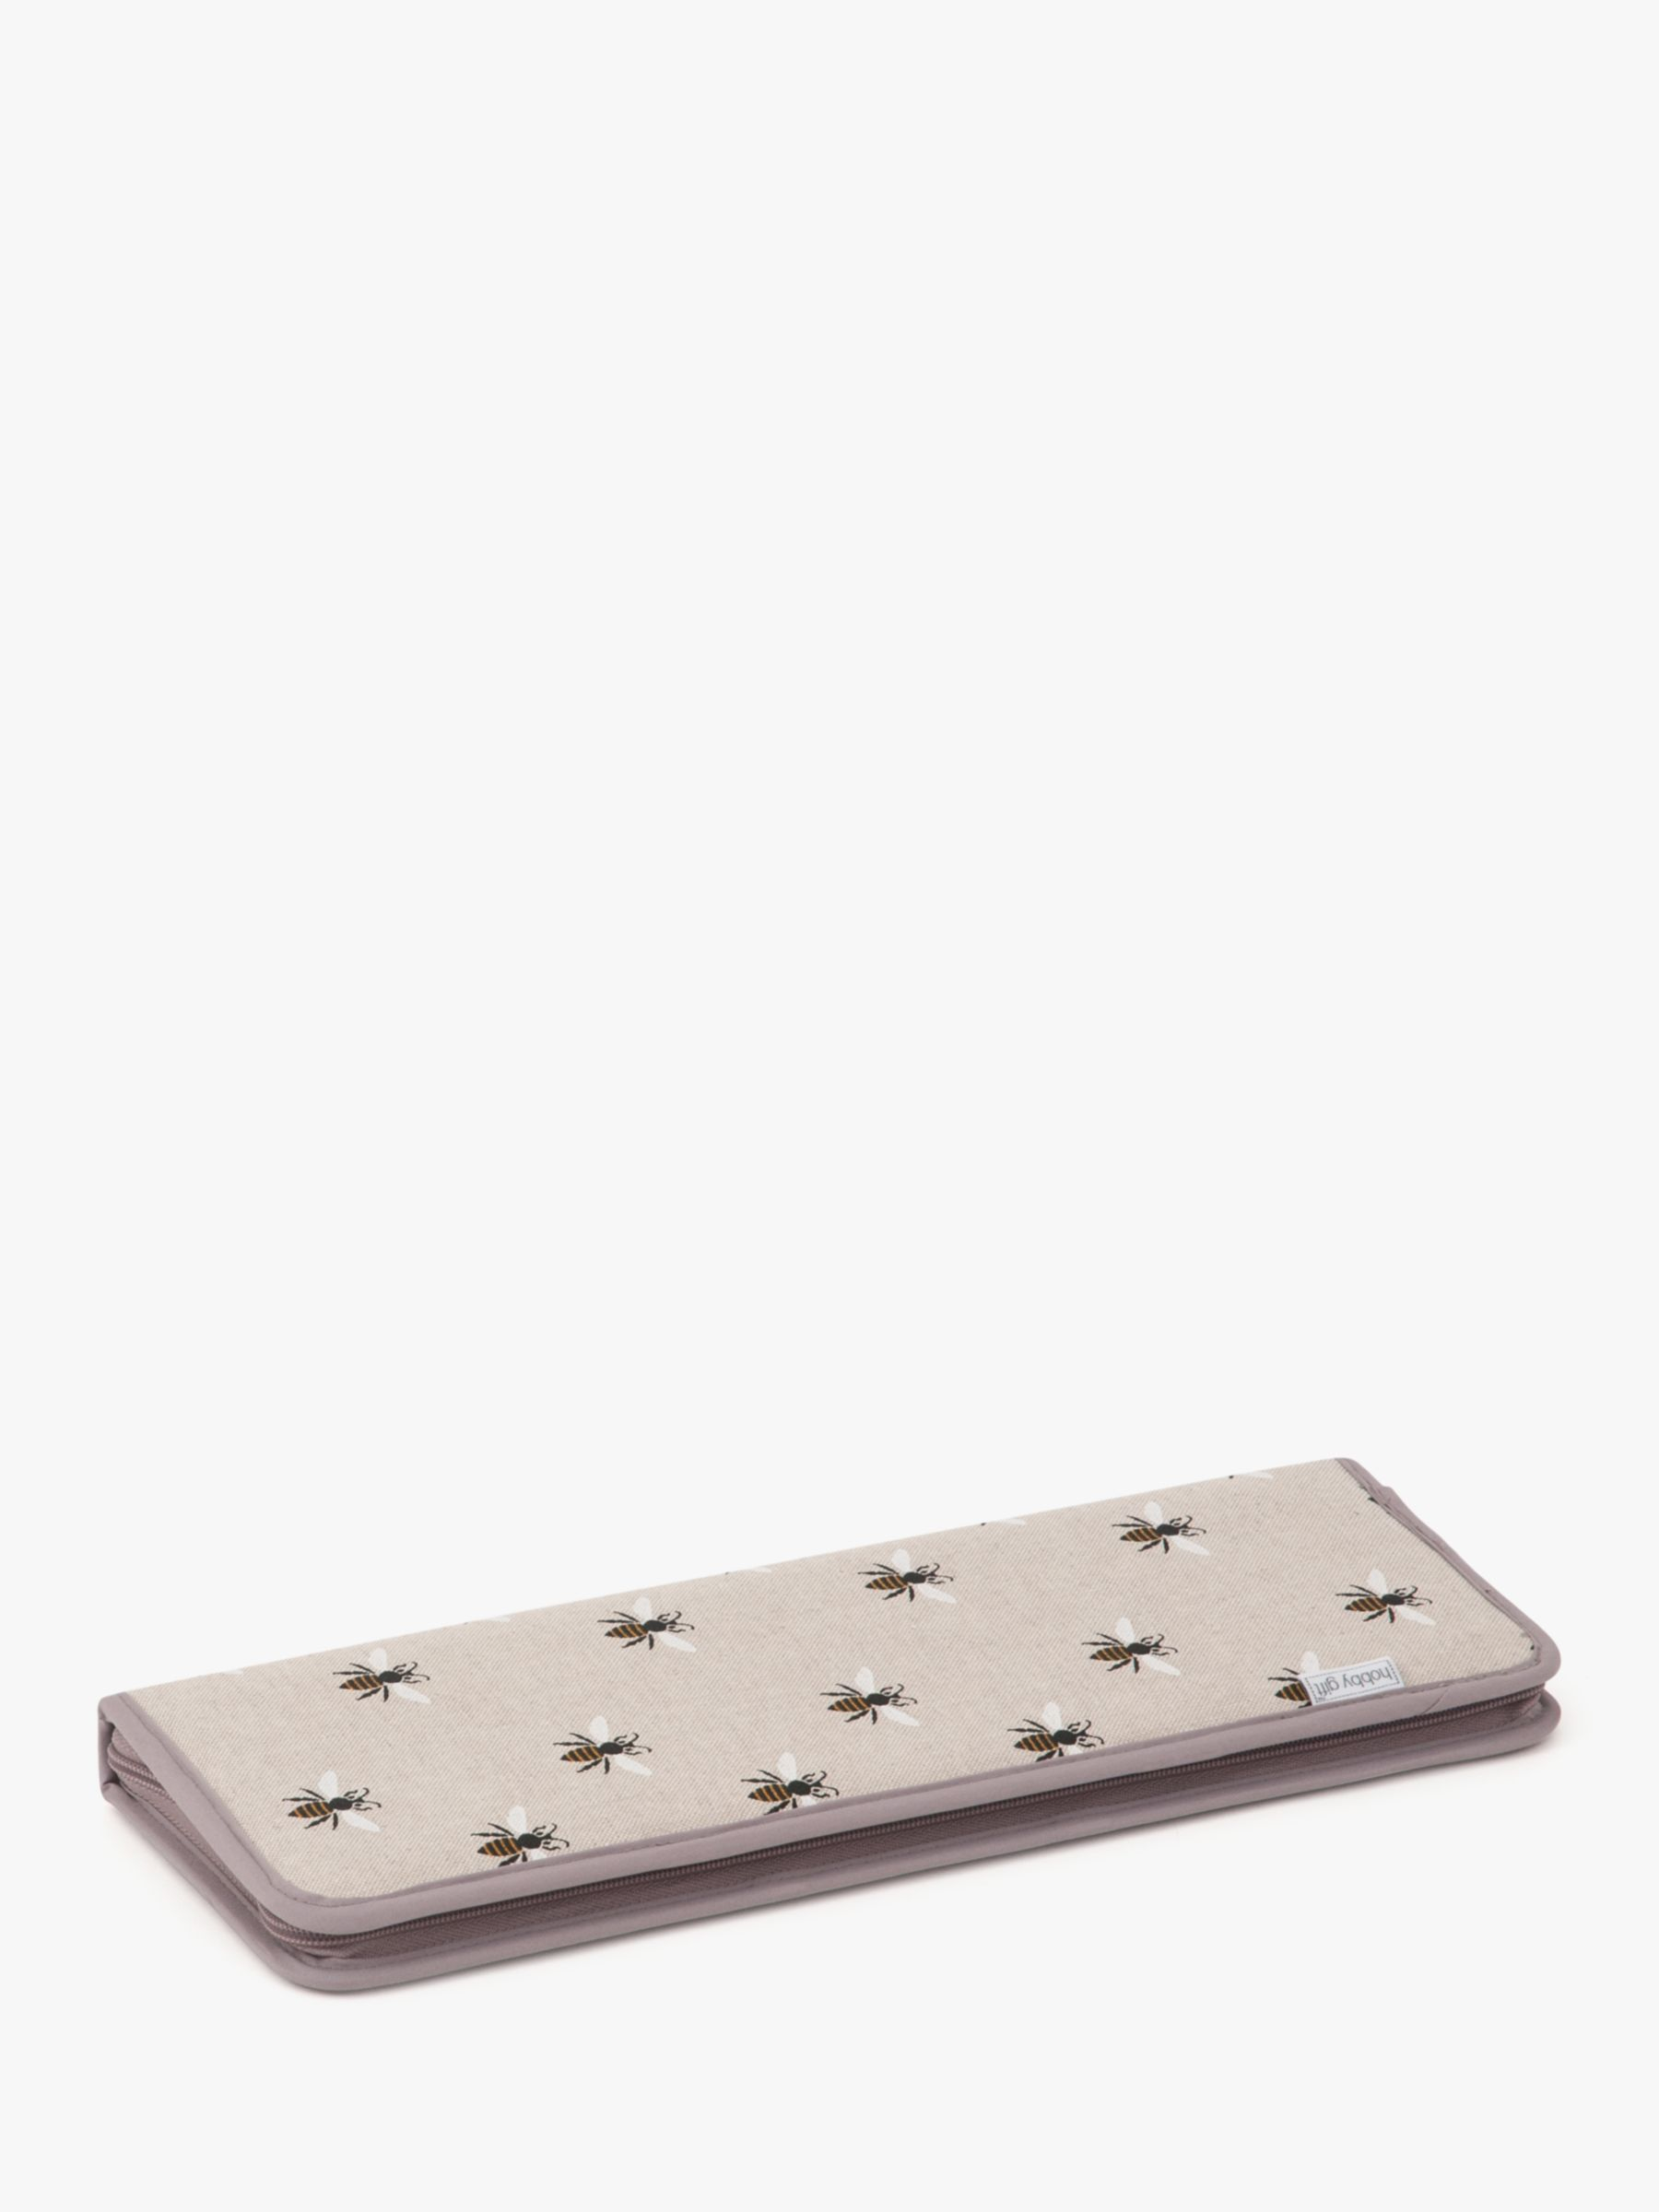 Groves Groves Bee Print Knitting Pin Case, Grey